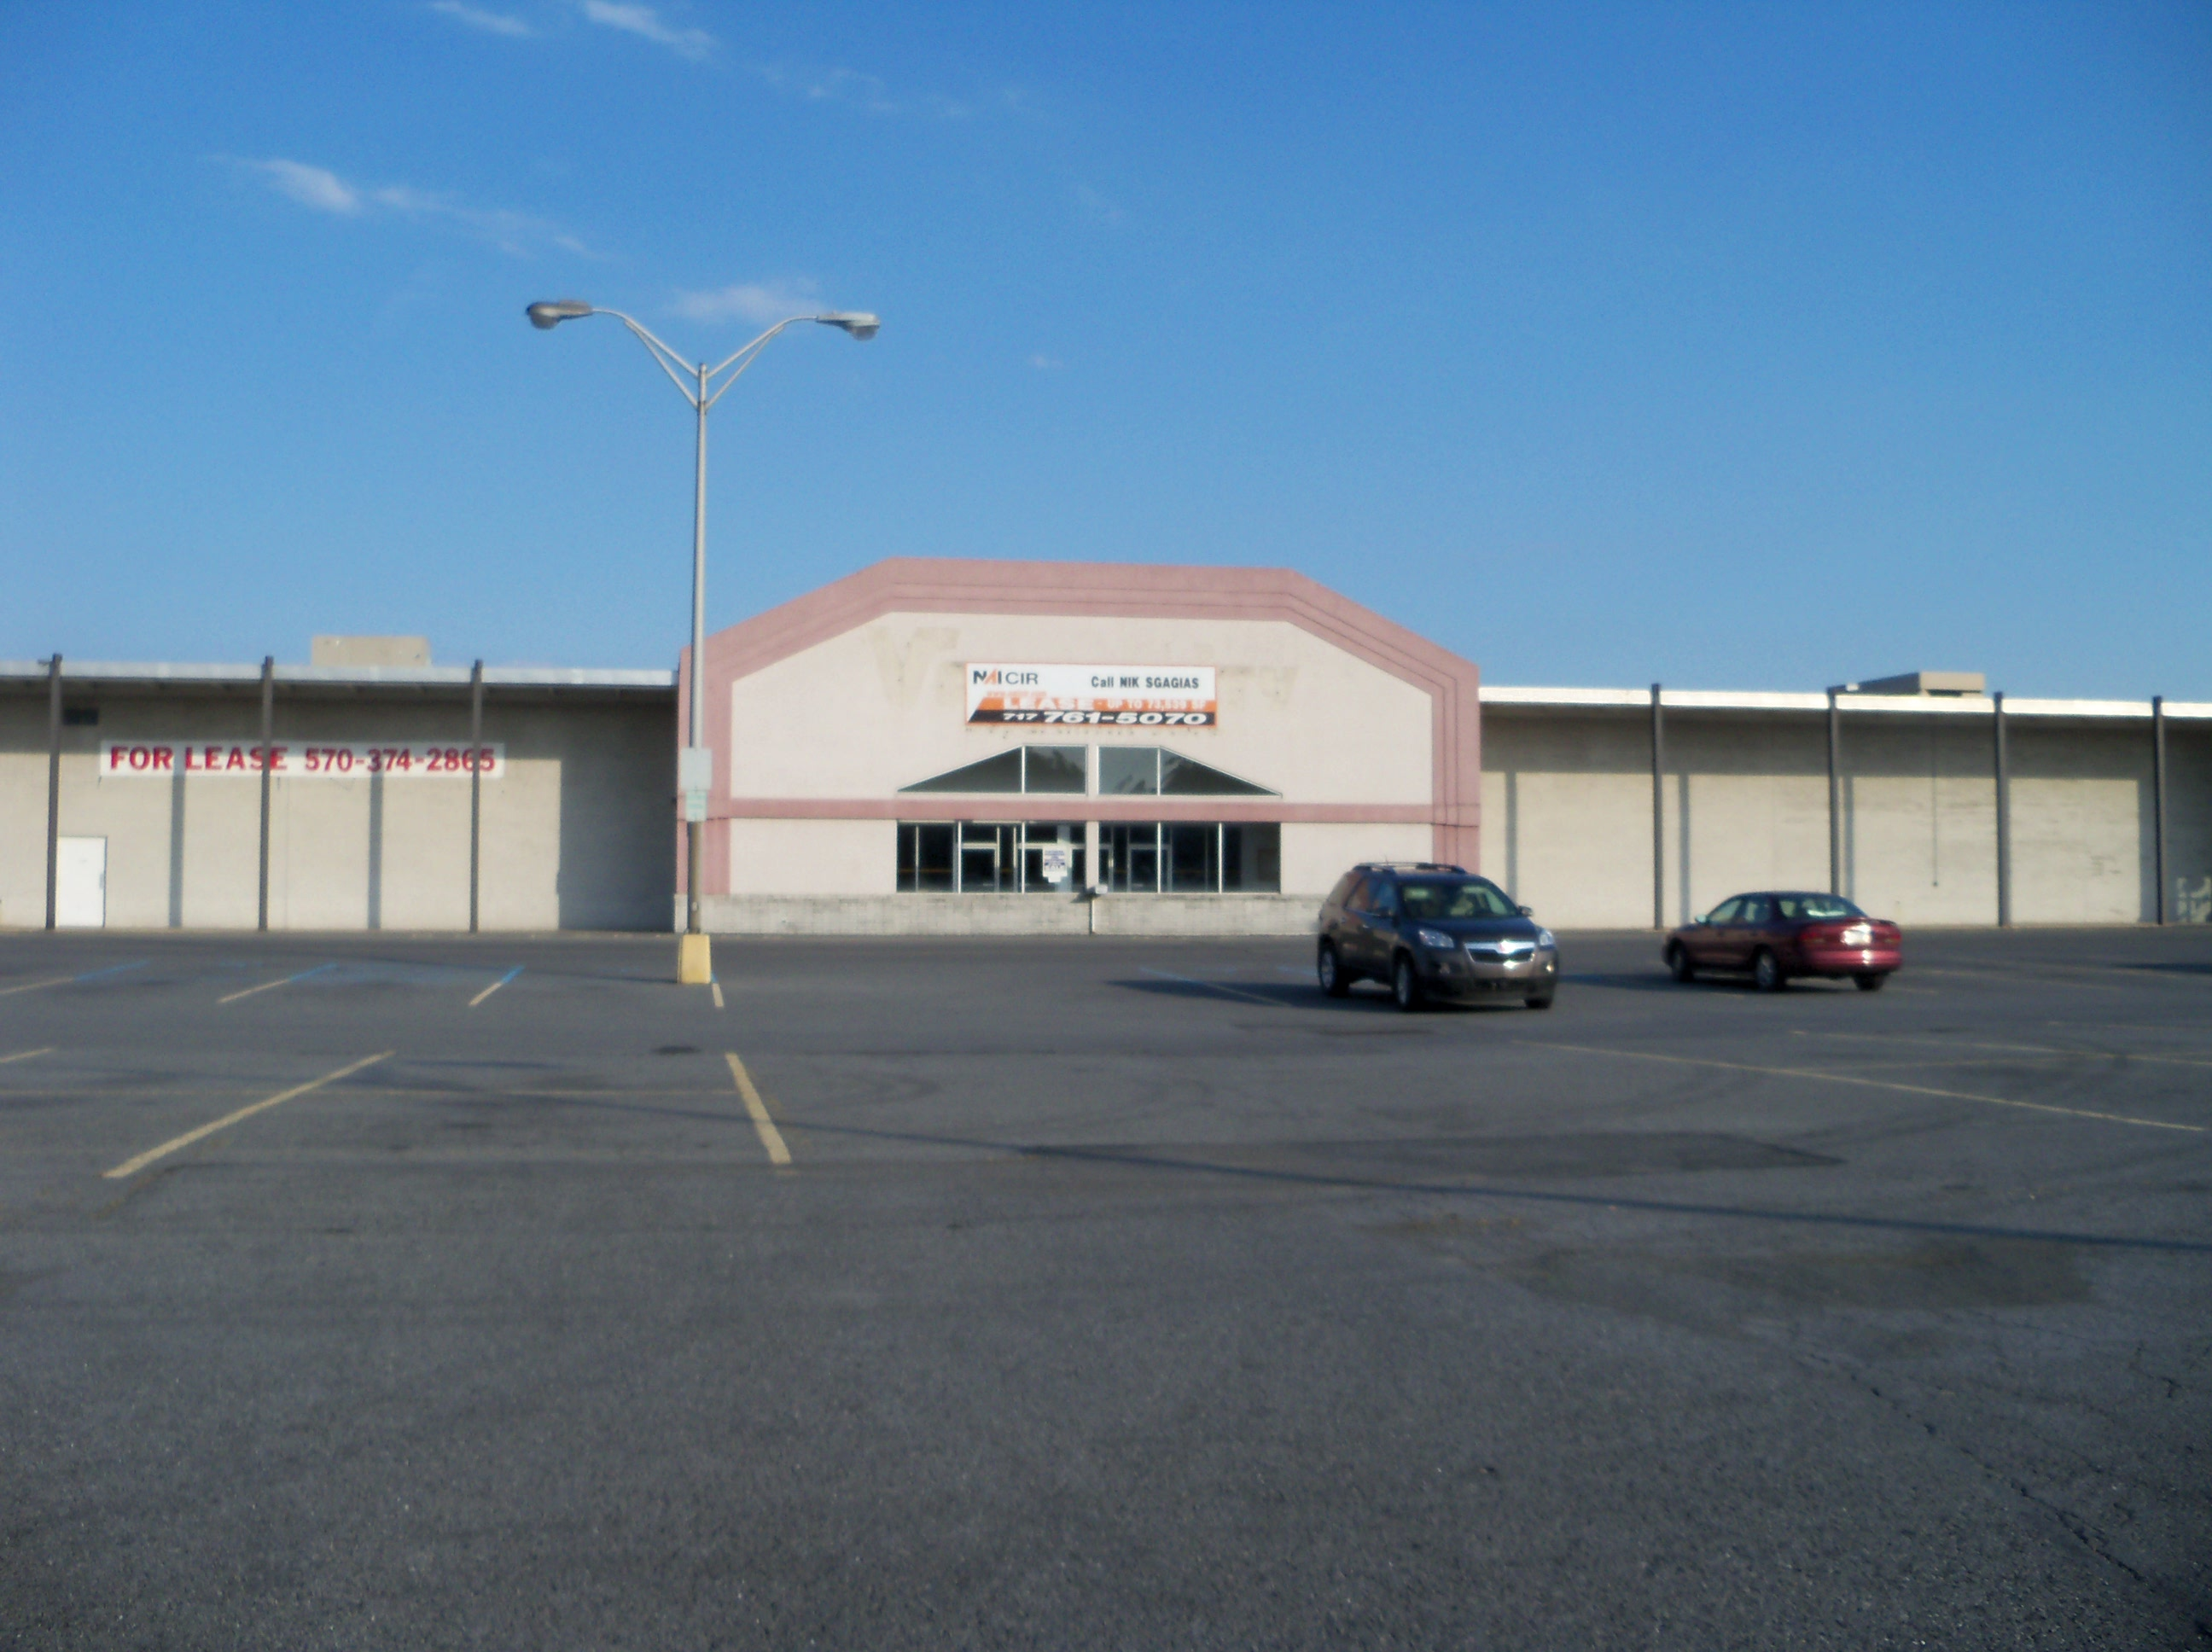 2 reviews of Value City Department Store